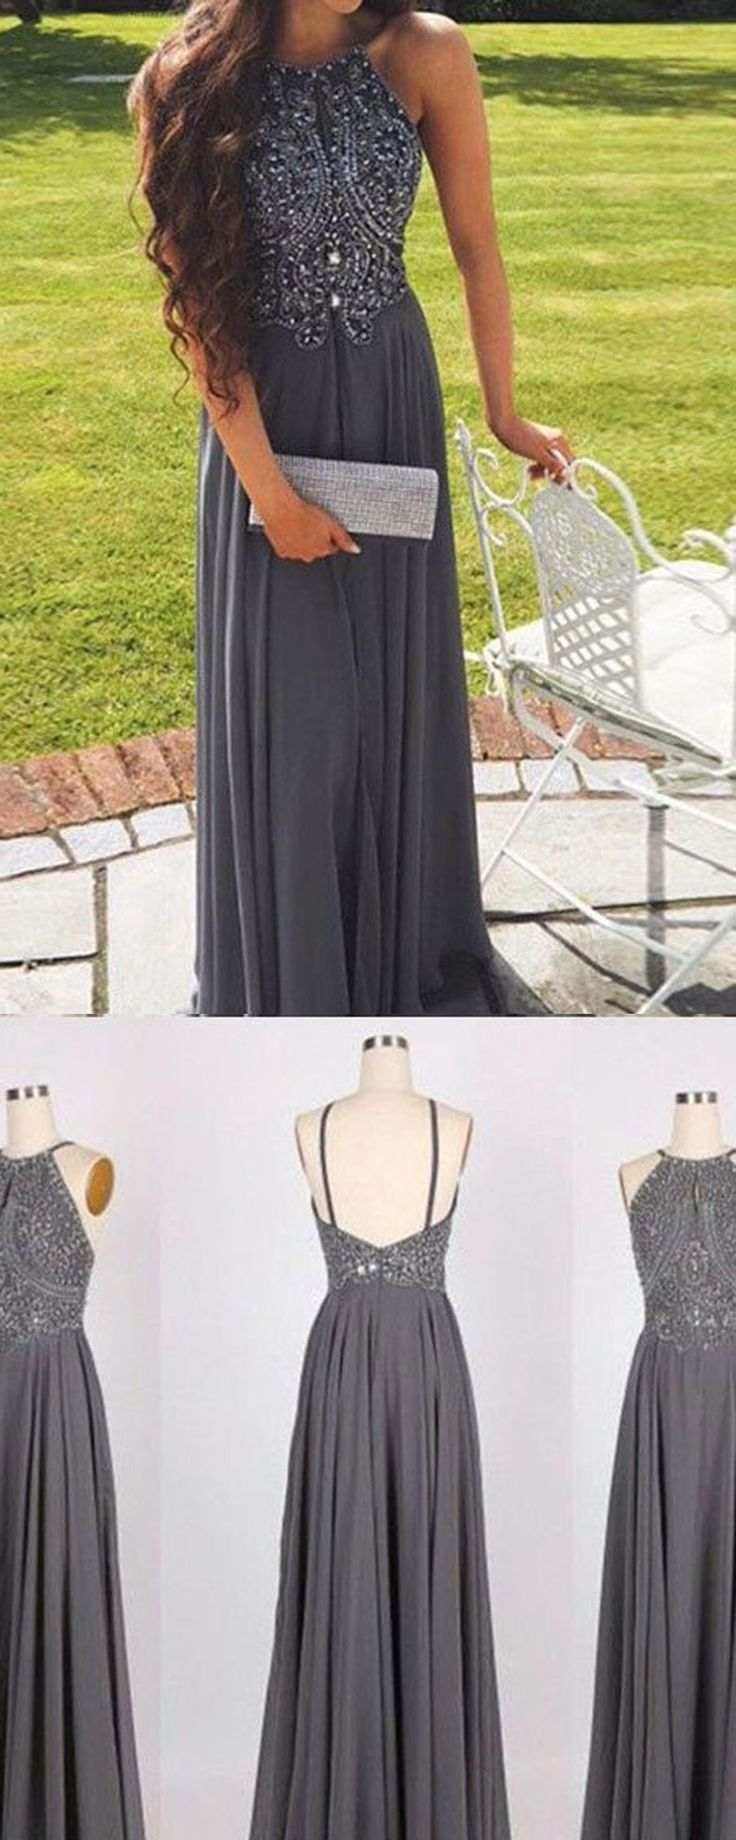 Hot Selling A-Line Prom Dress,Halter Gray Backless Prom Gown,Long Beading Prom Dress,Gray Evening Dress 2017,Prom Dresses